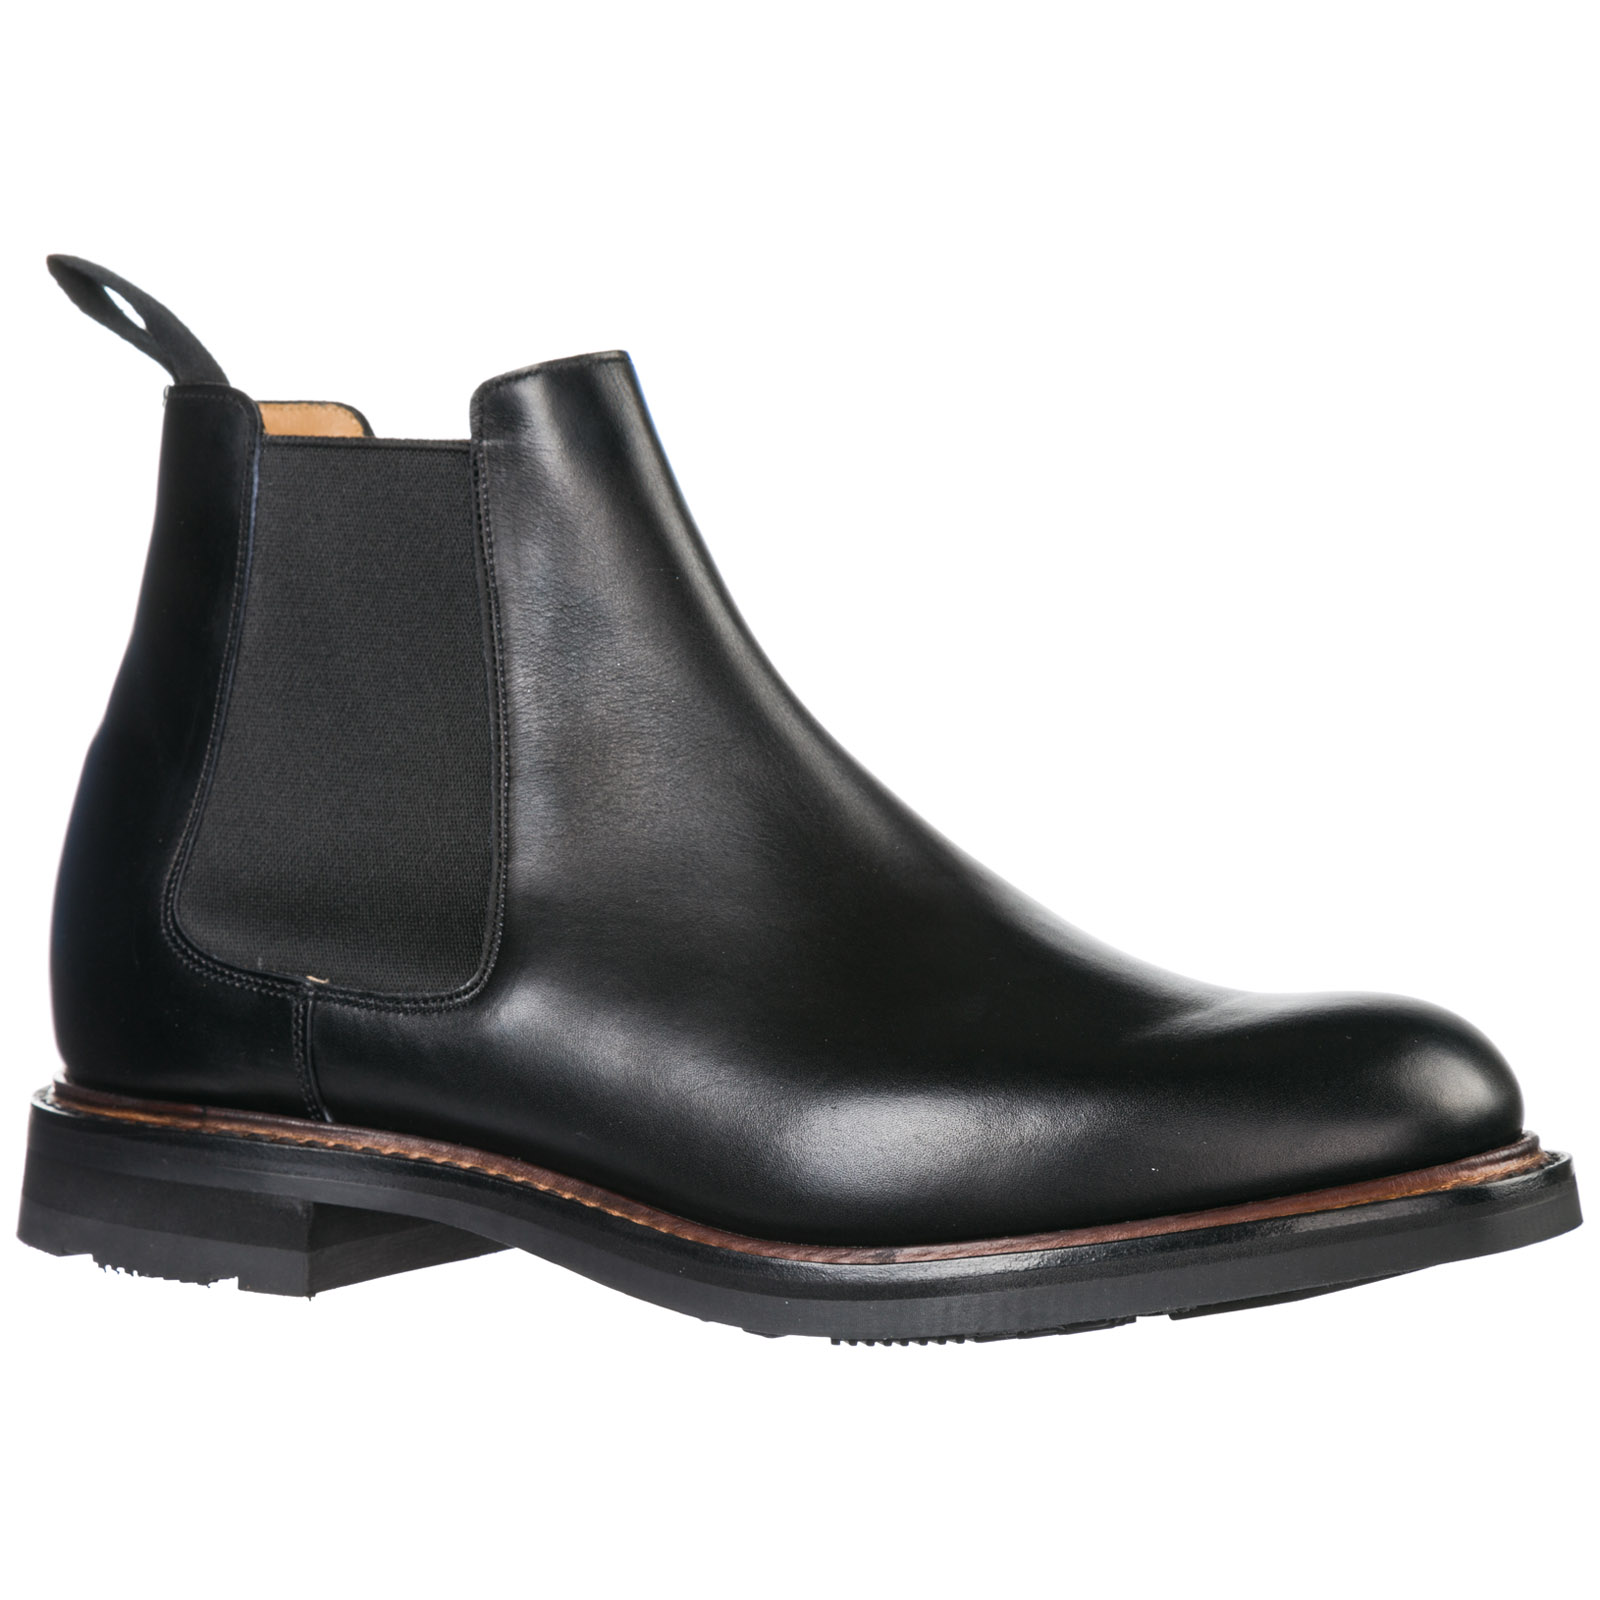 Men's genuine leather ankle boots welwyn